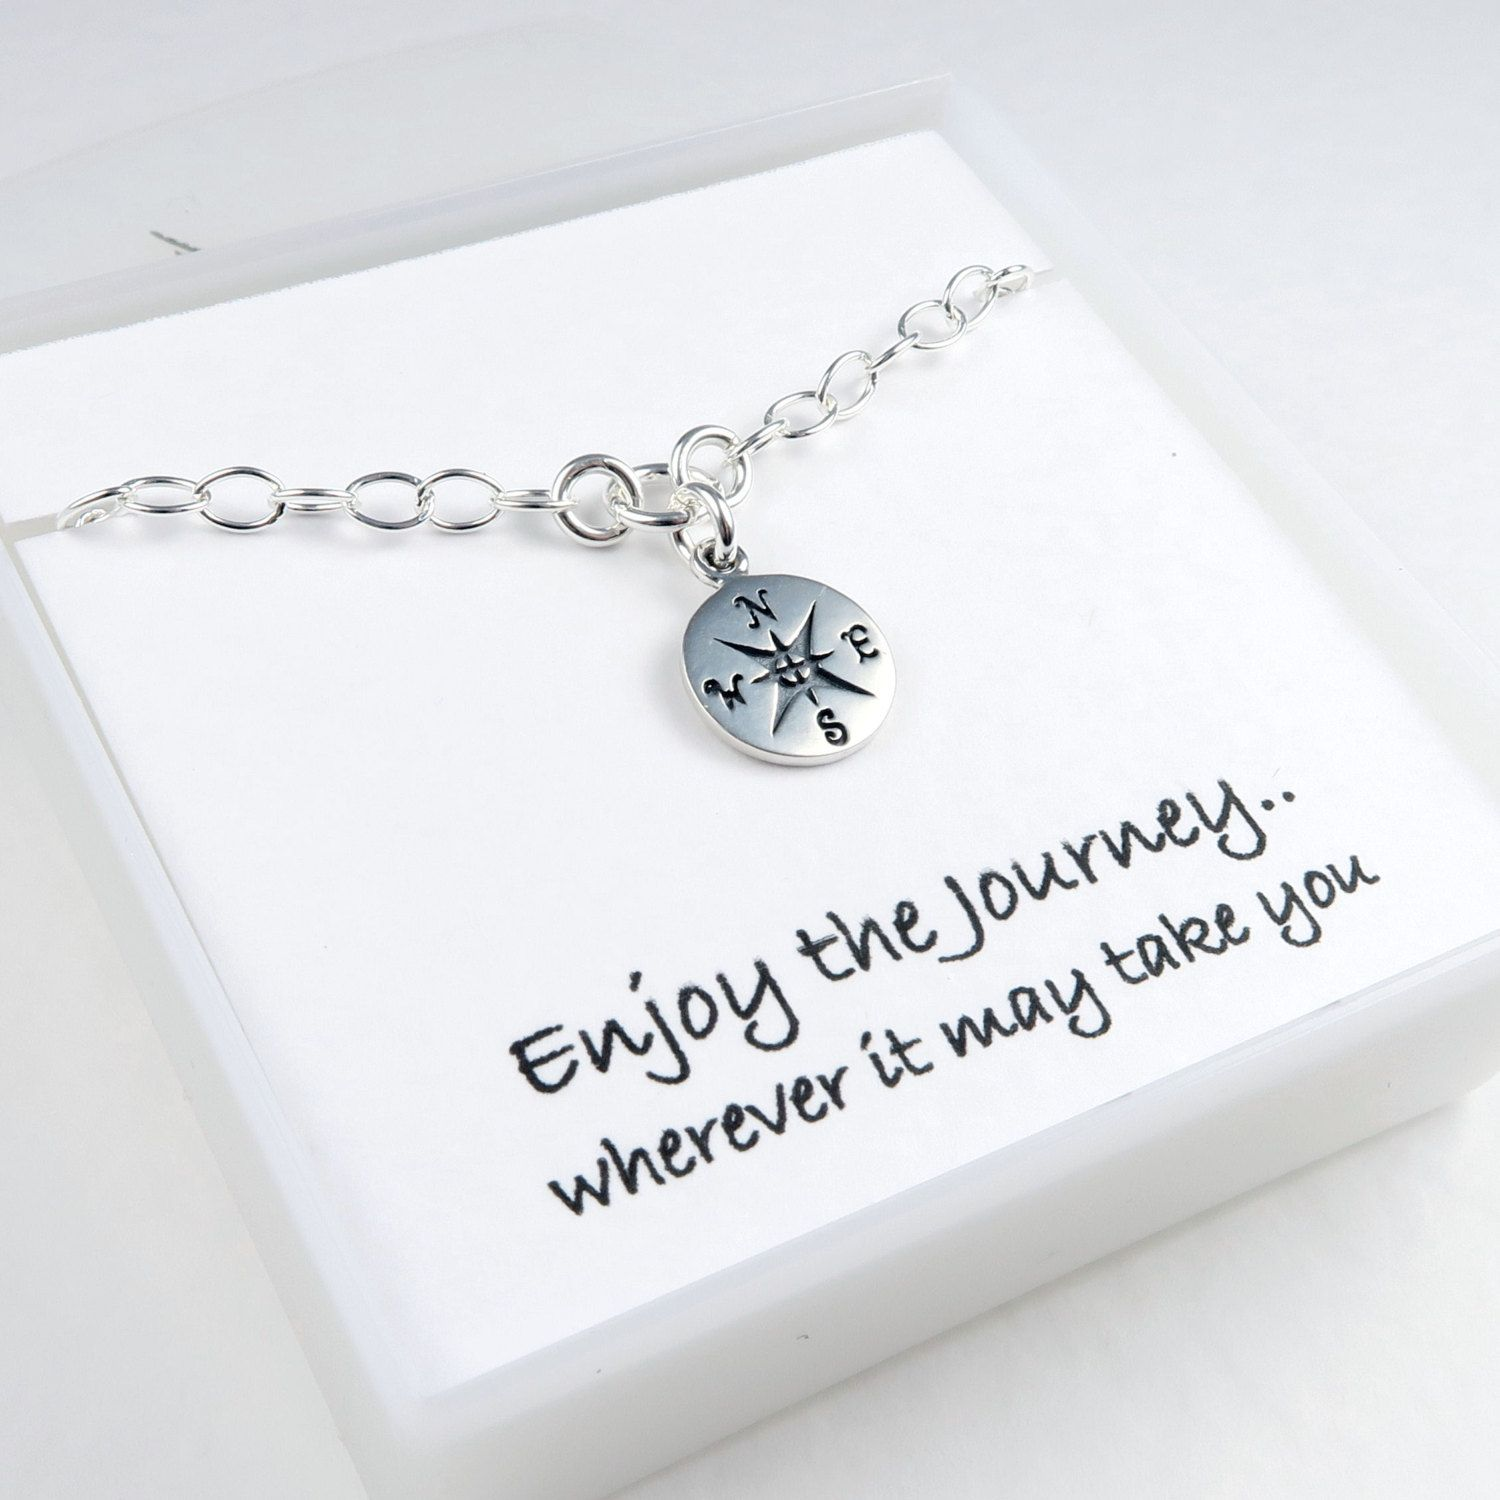 5a53f5acb7 Sterling Silver Compass Bracelet with Message Card , Traveler Good Luck  Jewelry or for Graduation Gift